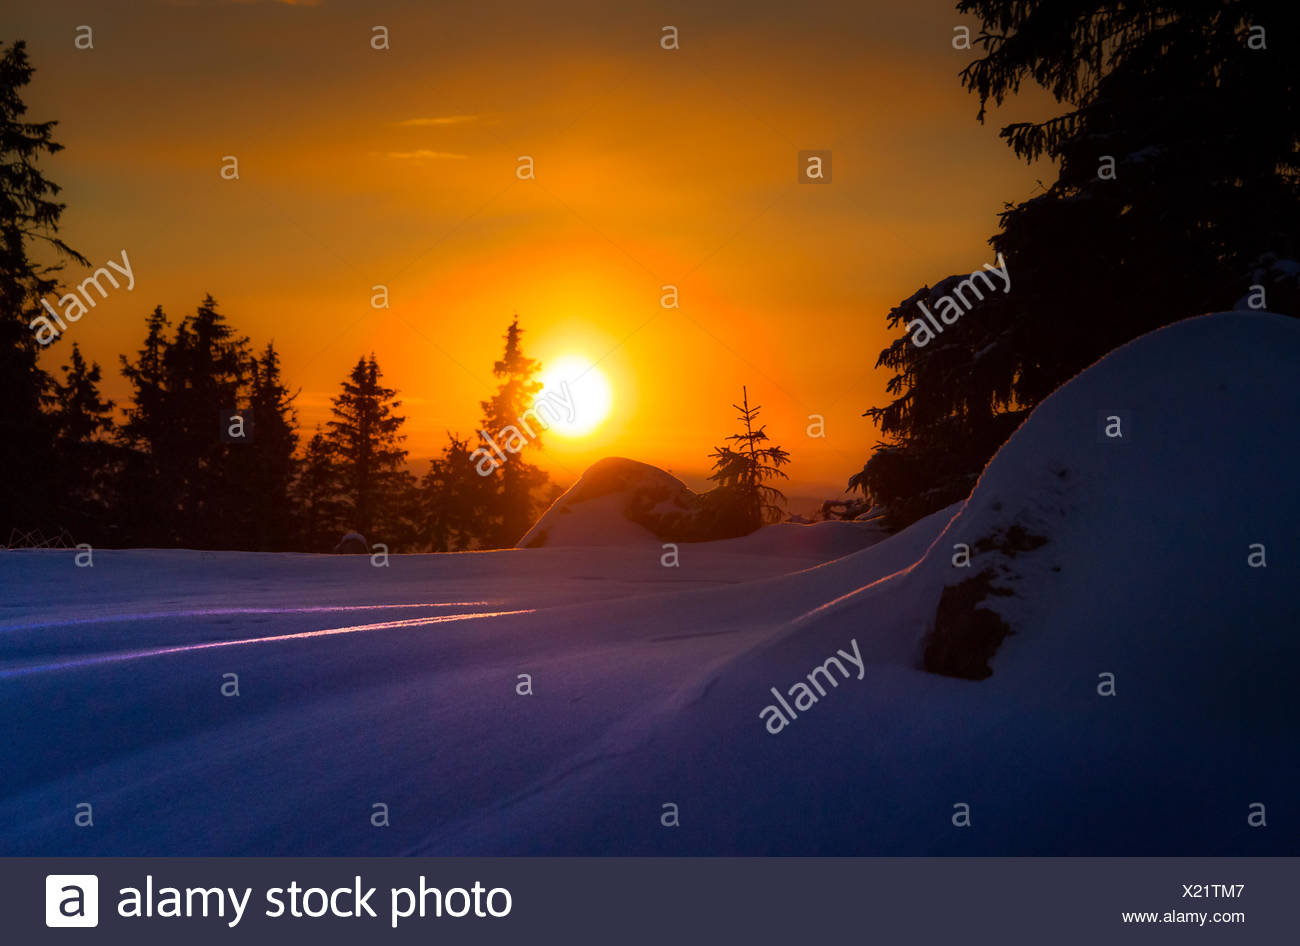 Snowy landscape in sunset - Stock Image